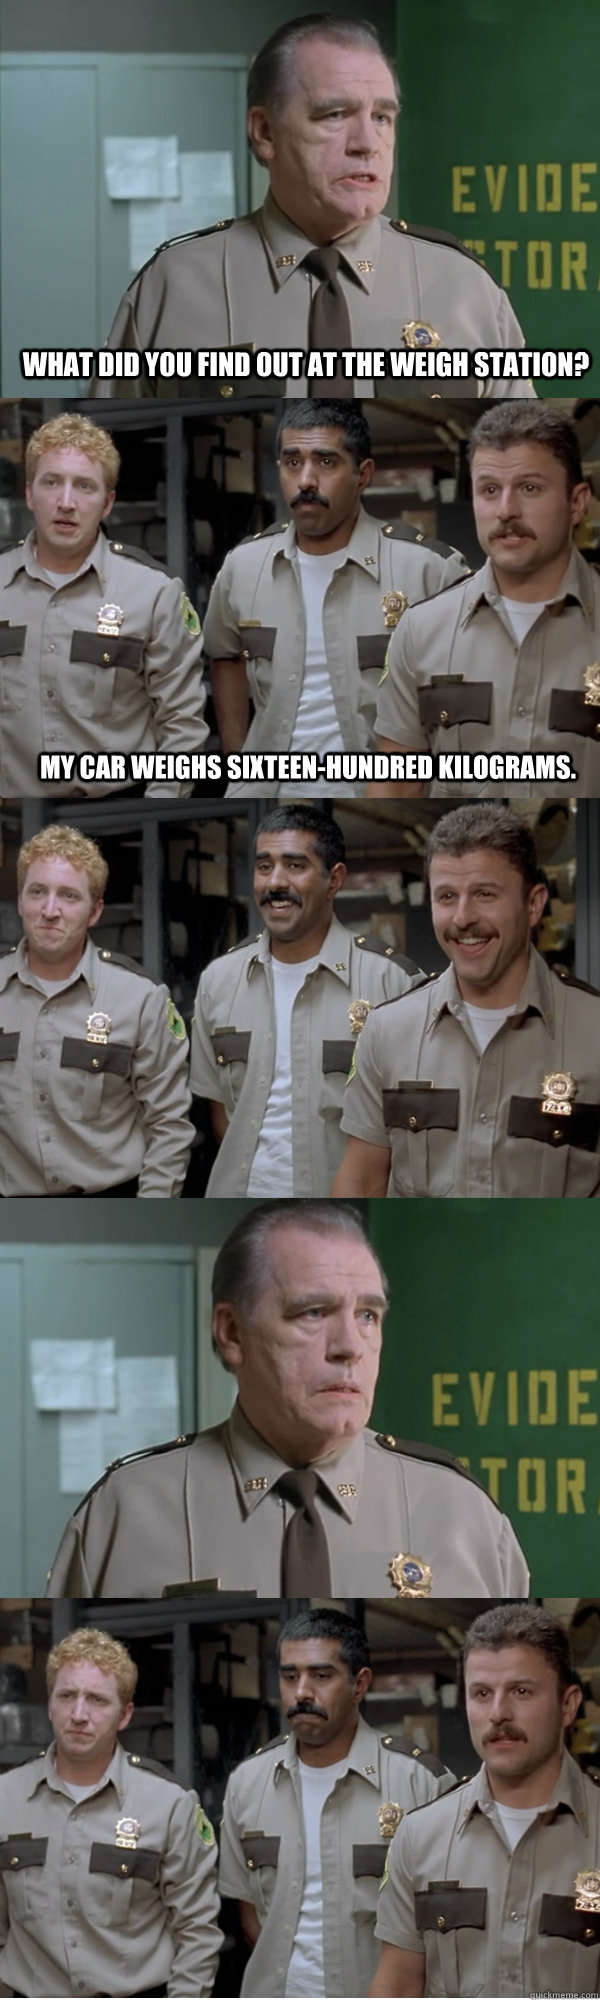 What did you find out at the weigh station? My car weighs sixteen-hundred kilograms.  Super Troopers